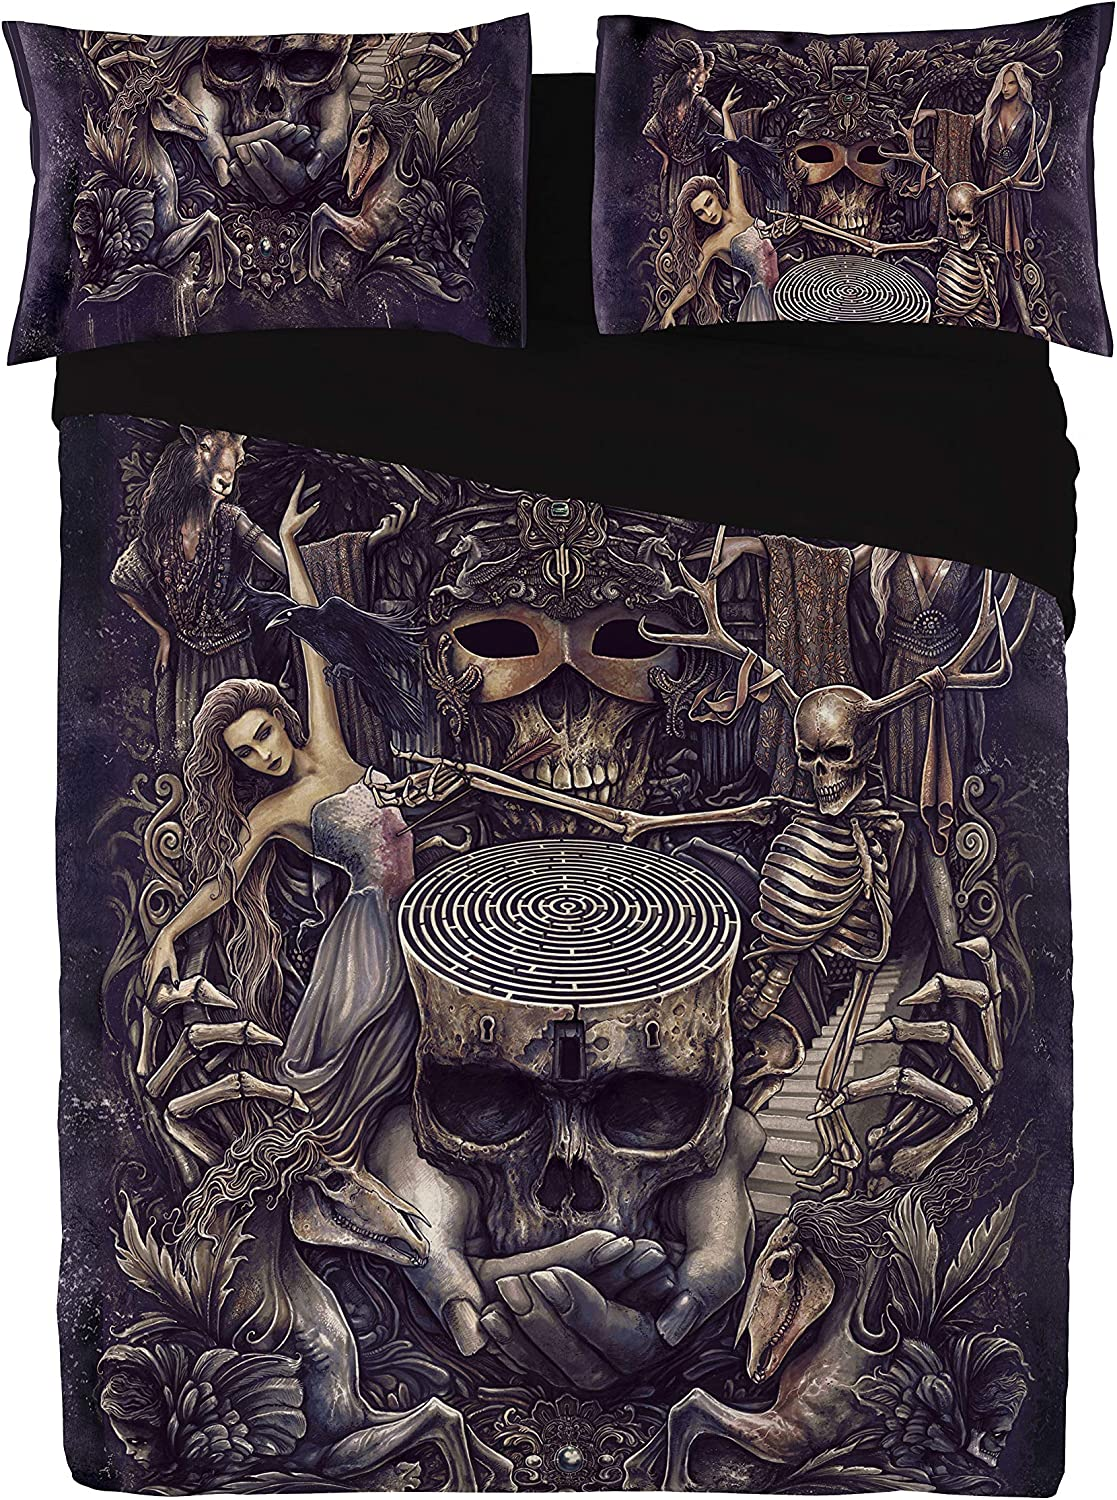 Wild Star Home Labyrinth - Duvet Que Covers Pillowcase Dedication Set for Clearance SALE Limited time